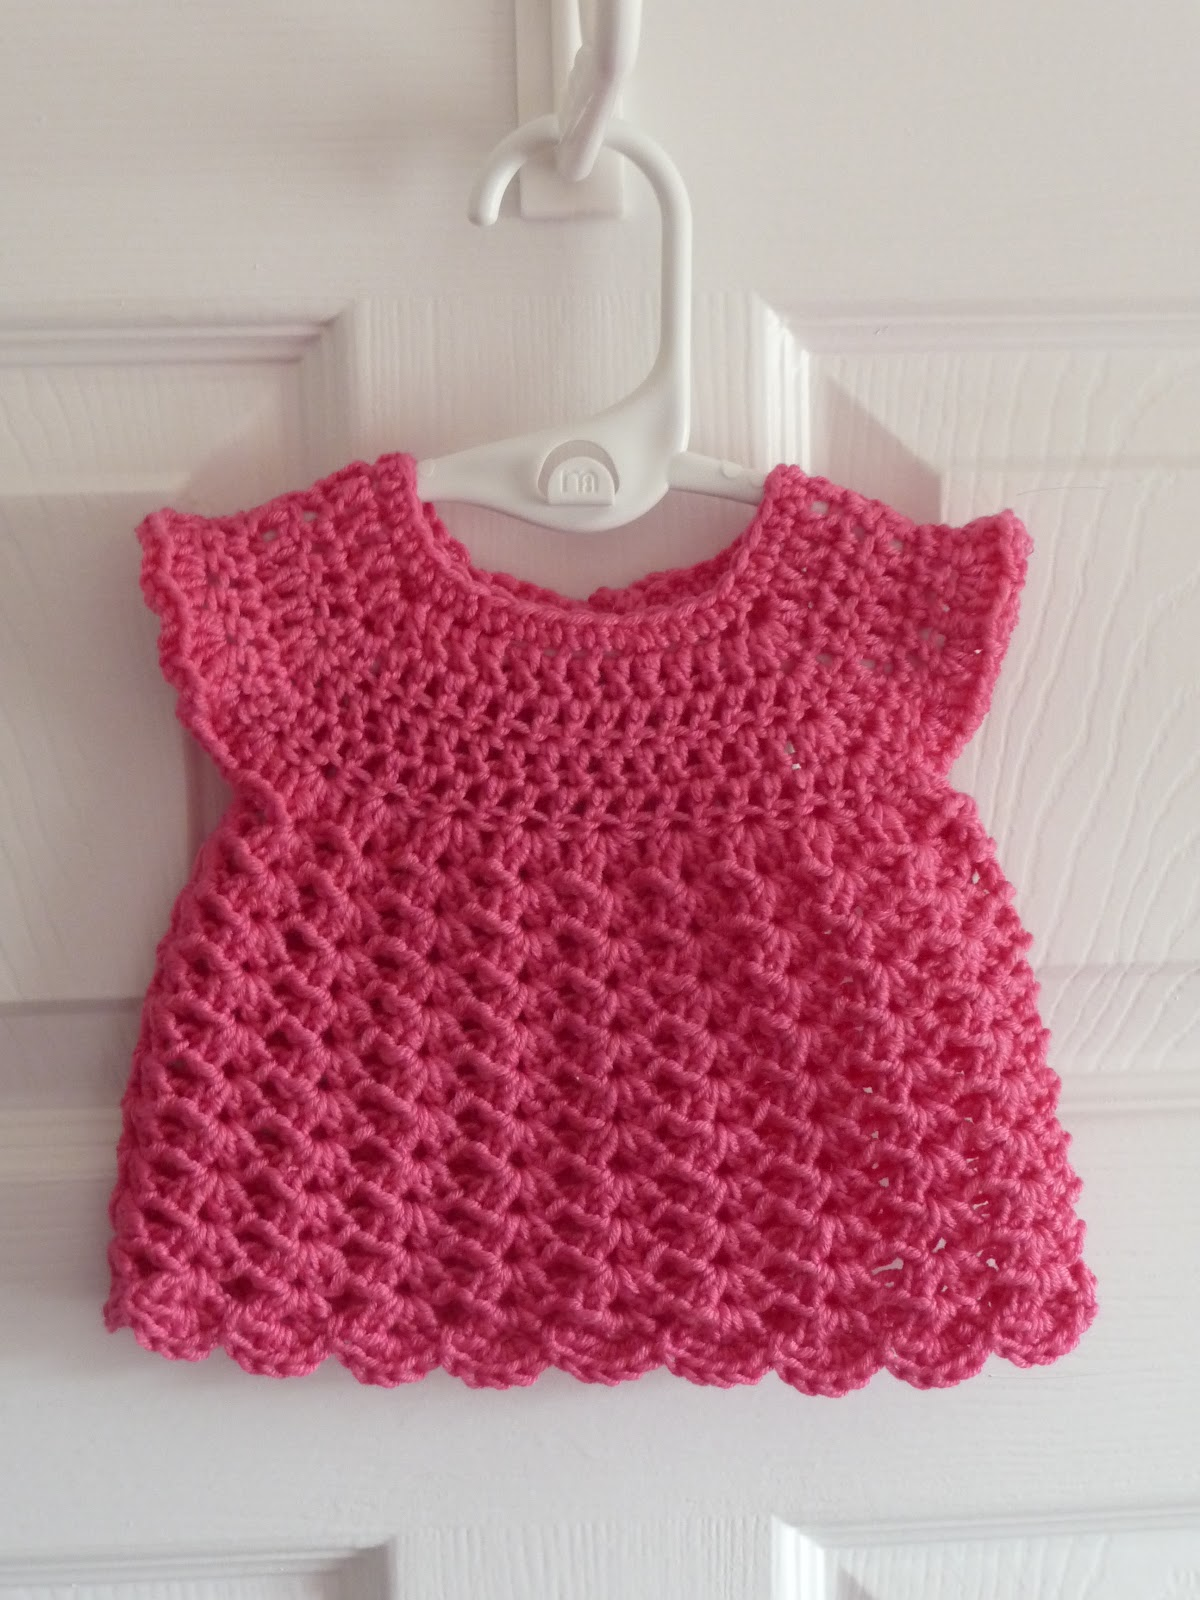 Free Crochet Pattern For A Baby Dress : Princess Crafts: Dinky crochet baby dress